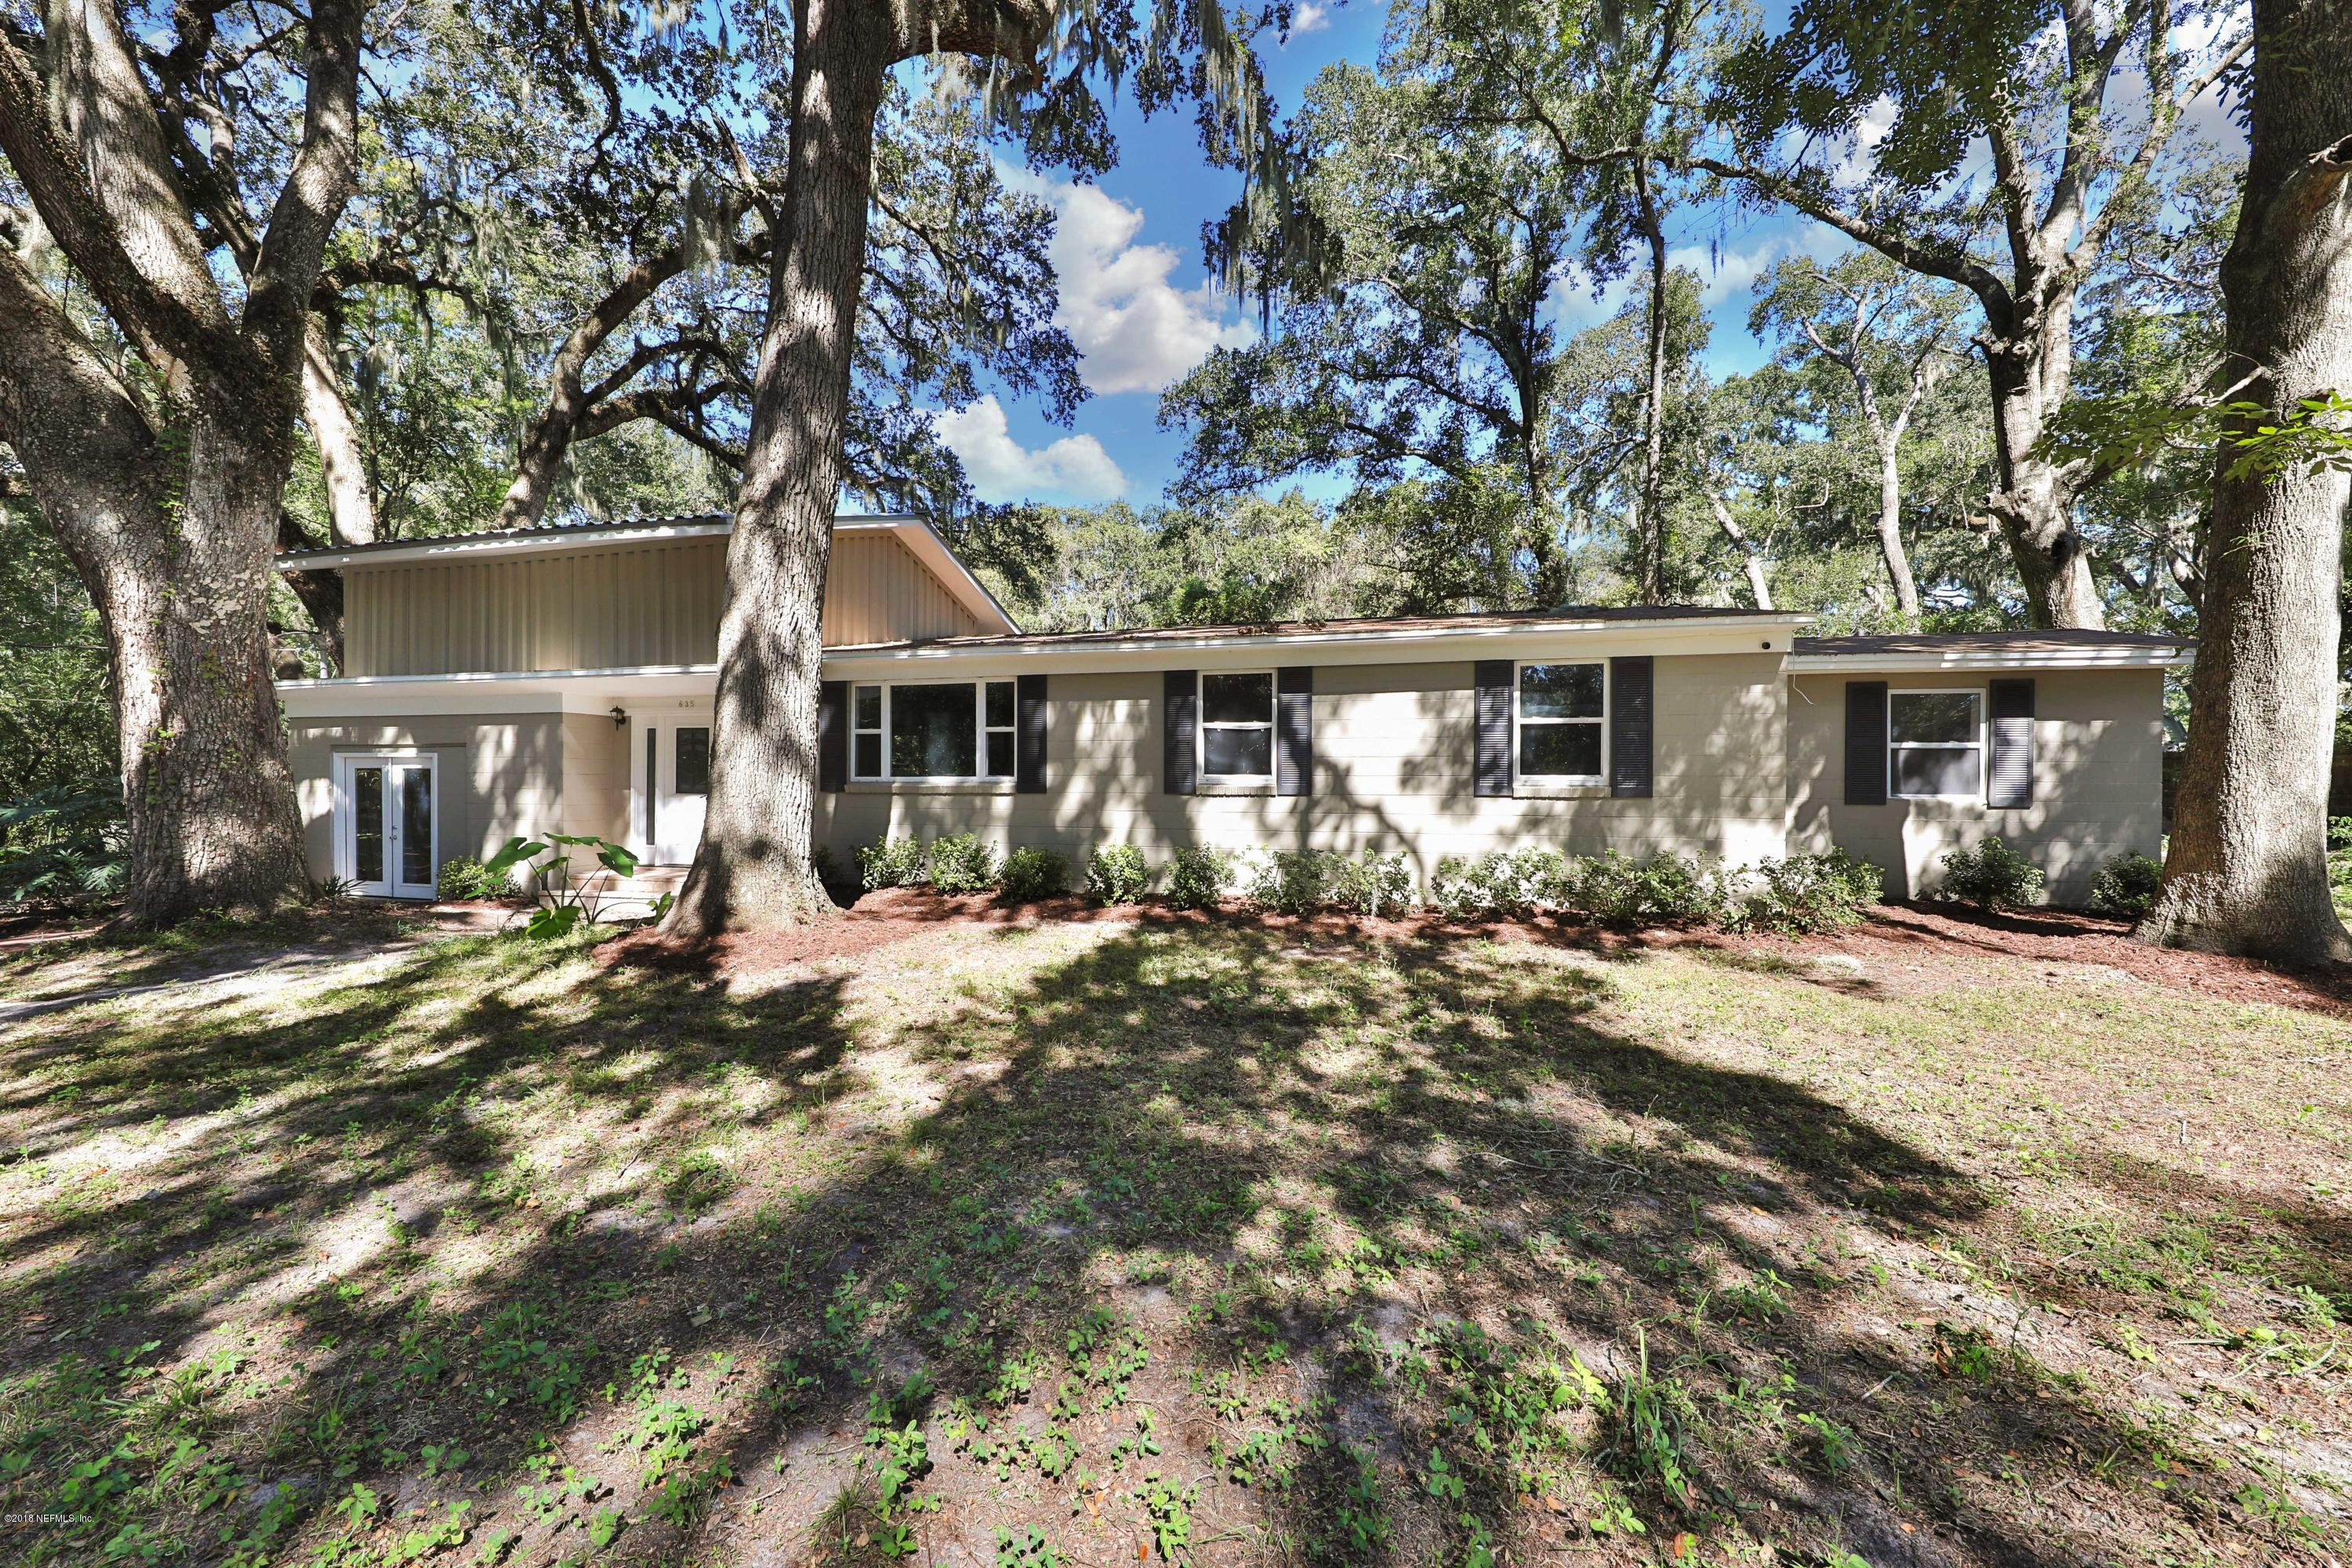 635 MILWAUKEE, ORANGE PARK, FLORIDA 32073, 4 Bedrooms Bedrooms, ,3 BathroomsBathrooms,Residential - single family,For sale,MILWAUKEE,962069